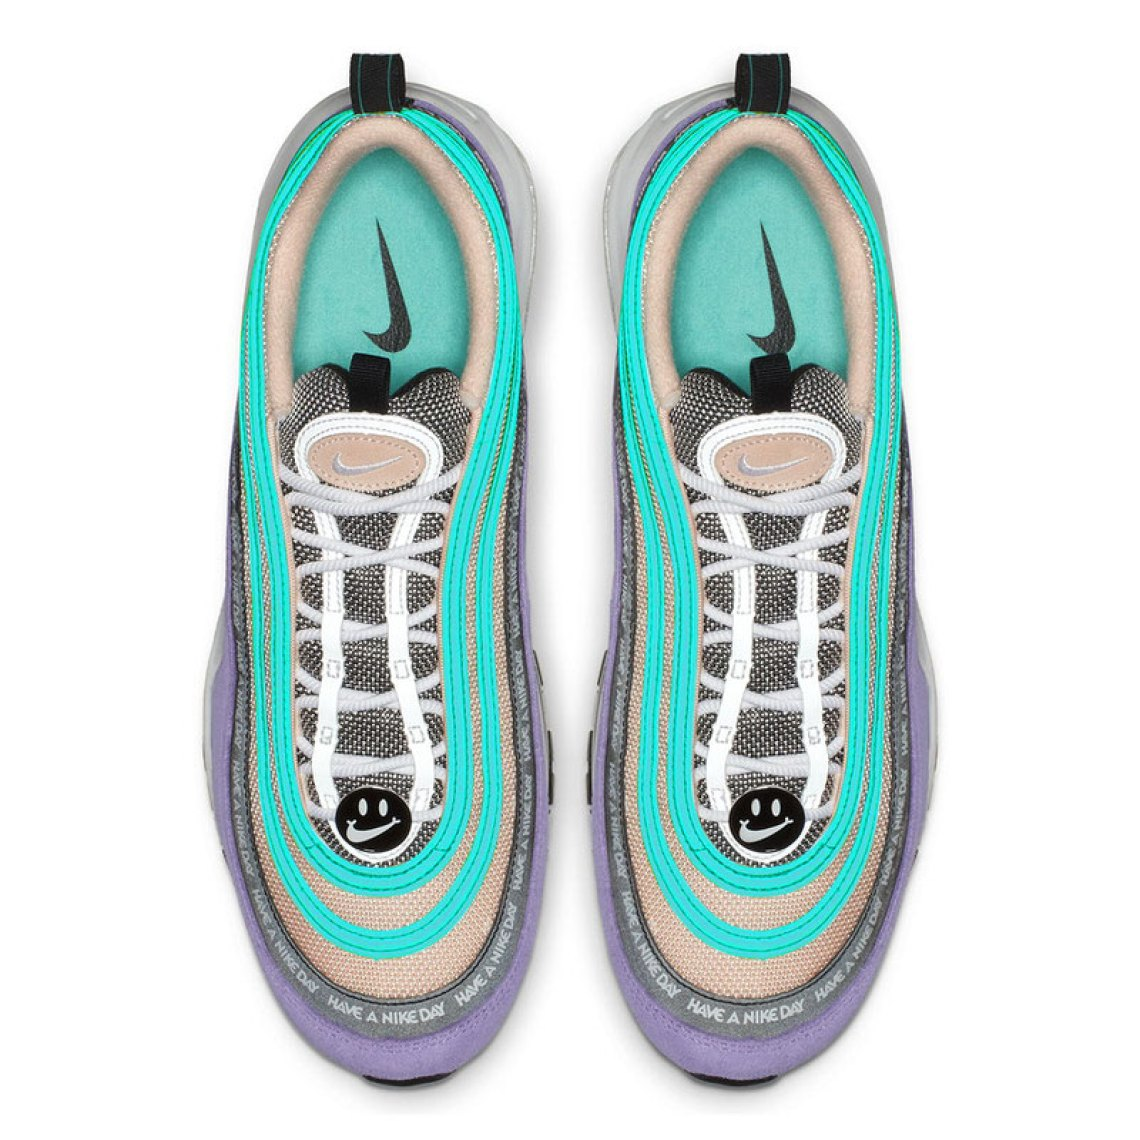 Have A Nike Day Air Max 97s Releasing This March Nice Kicks